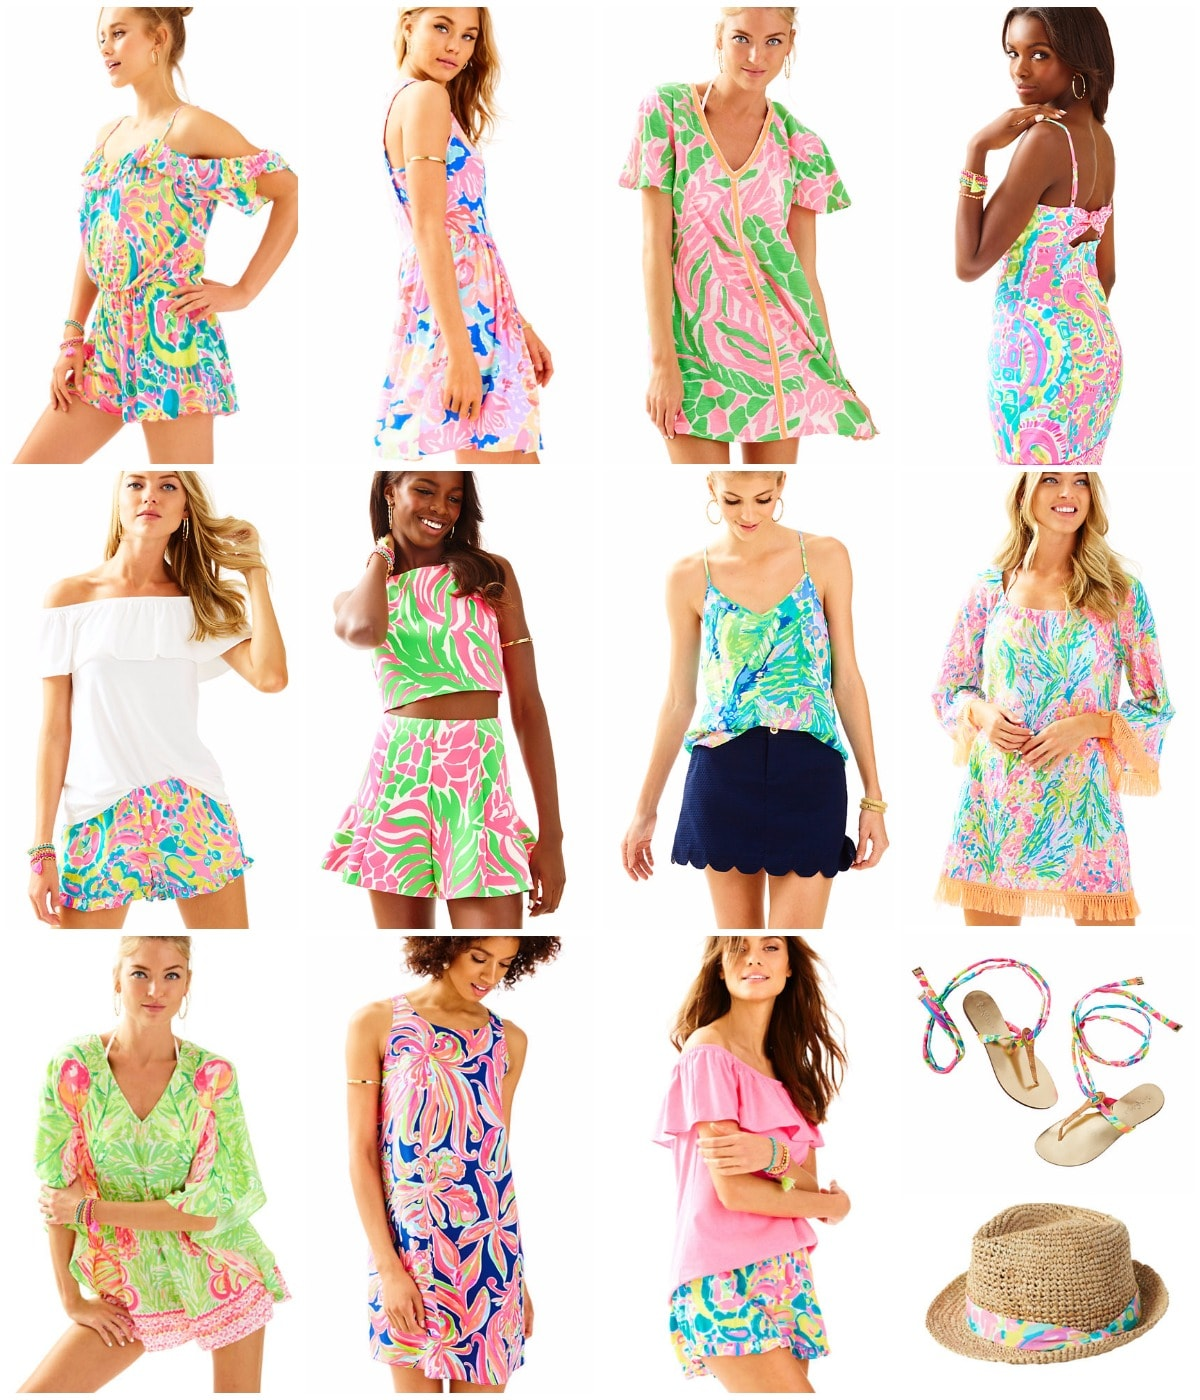 2554abf6db8 Lilly Pulitzer Spring Break Sunseekers Collection